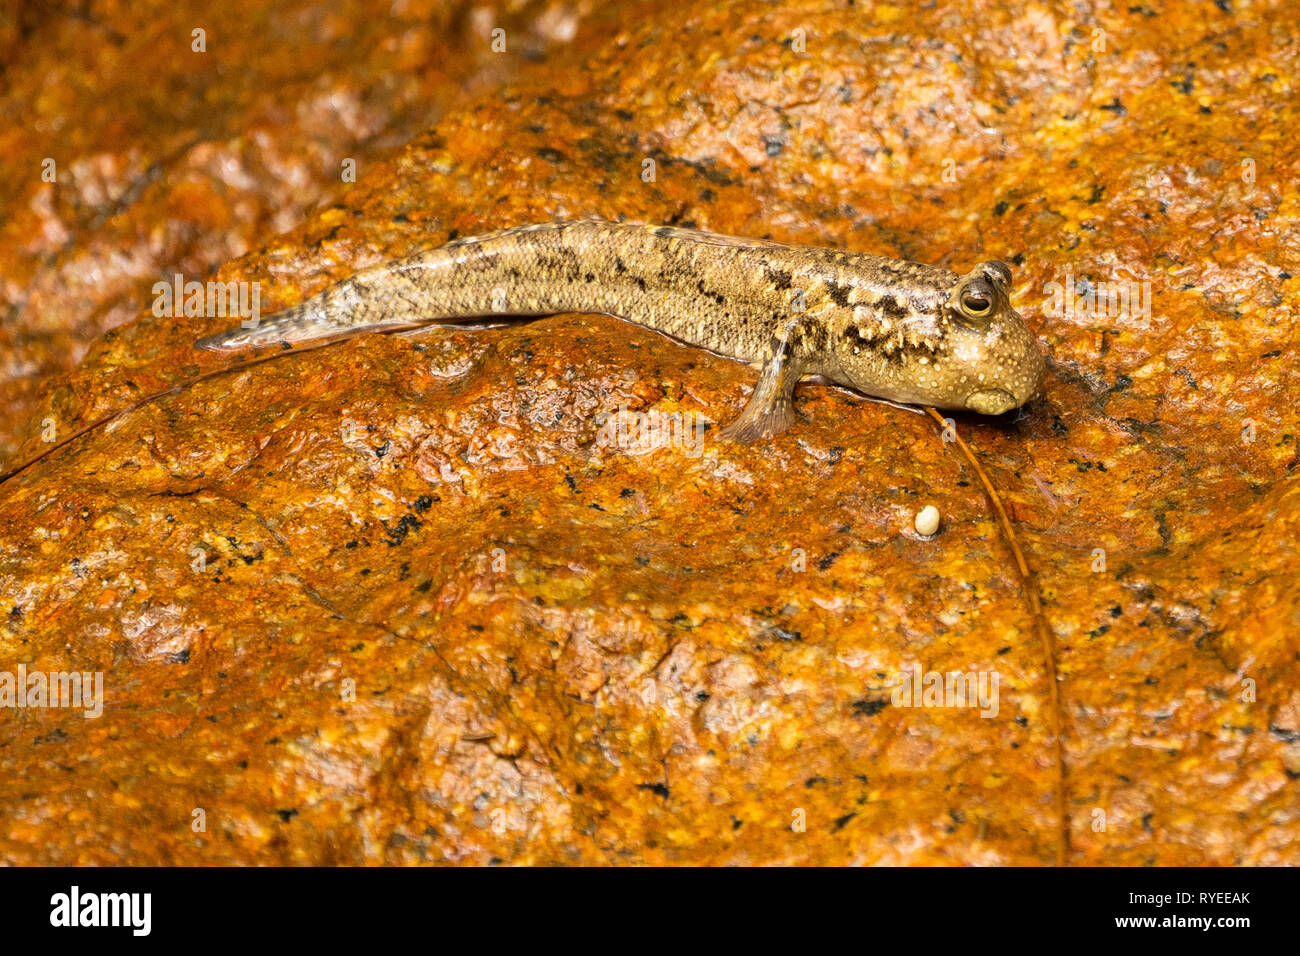 Mudskipper (Periophthalmus sp.) crawling on a rock. This amphibious fish can climb and walk on land using its limb-like pectoral fins (one seen just b - Stock Image